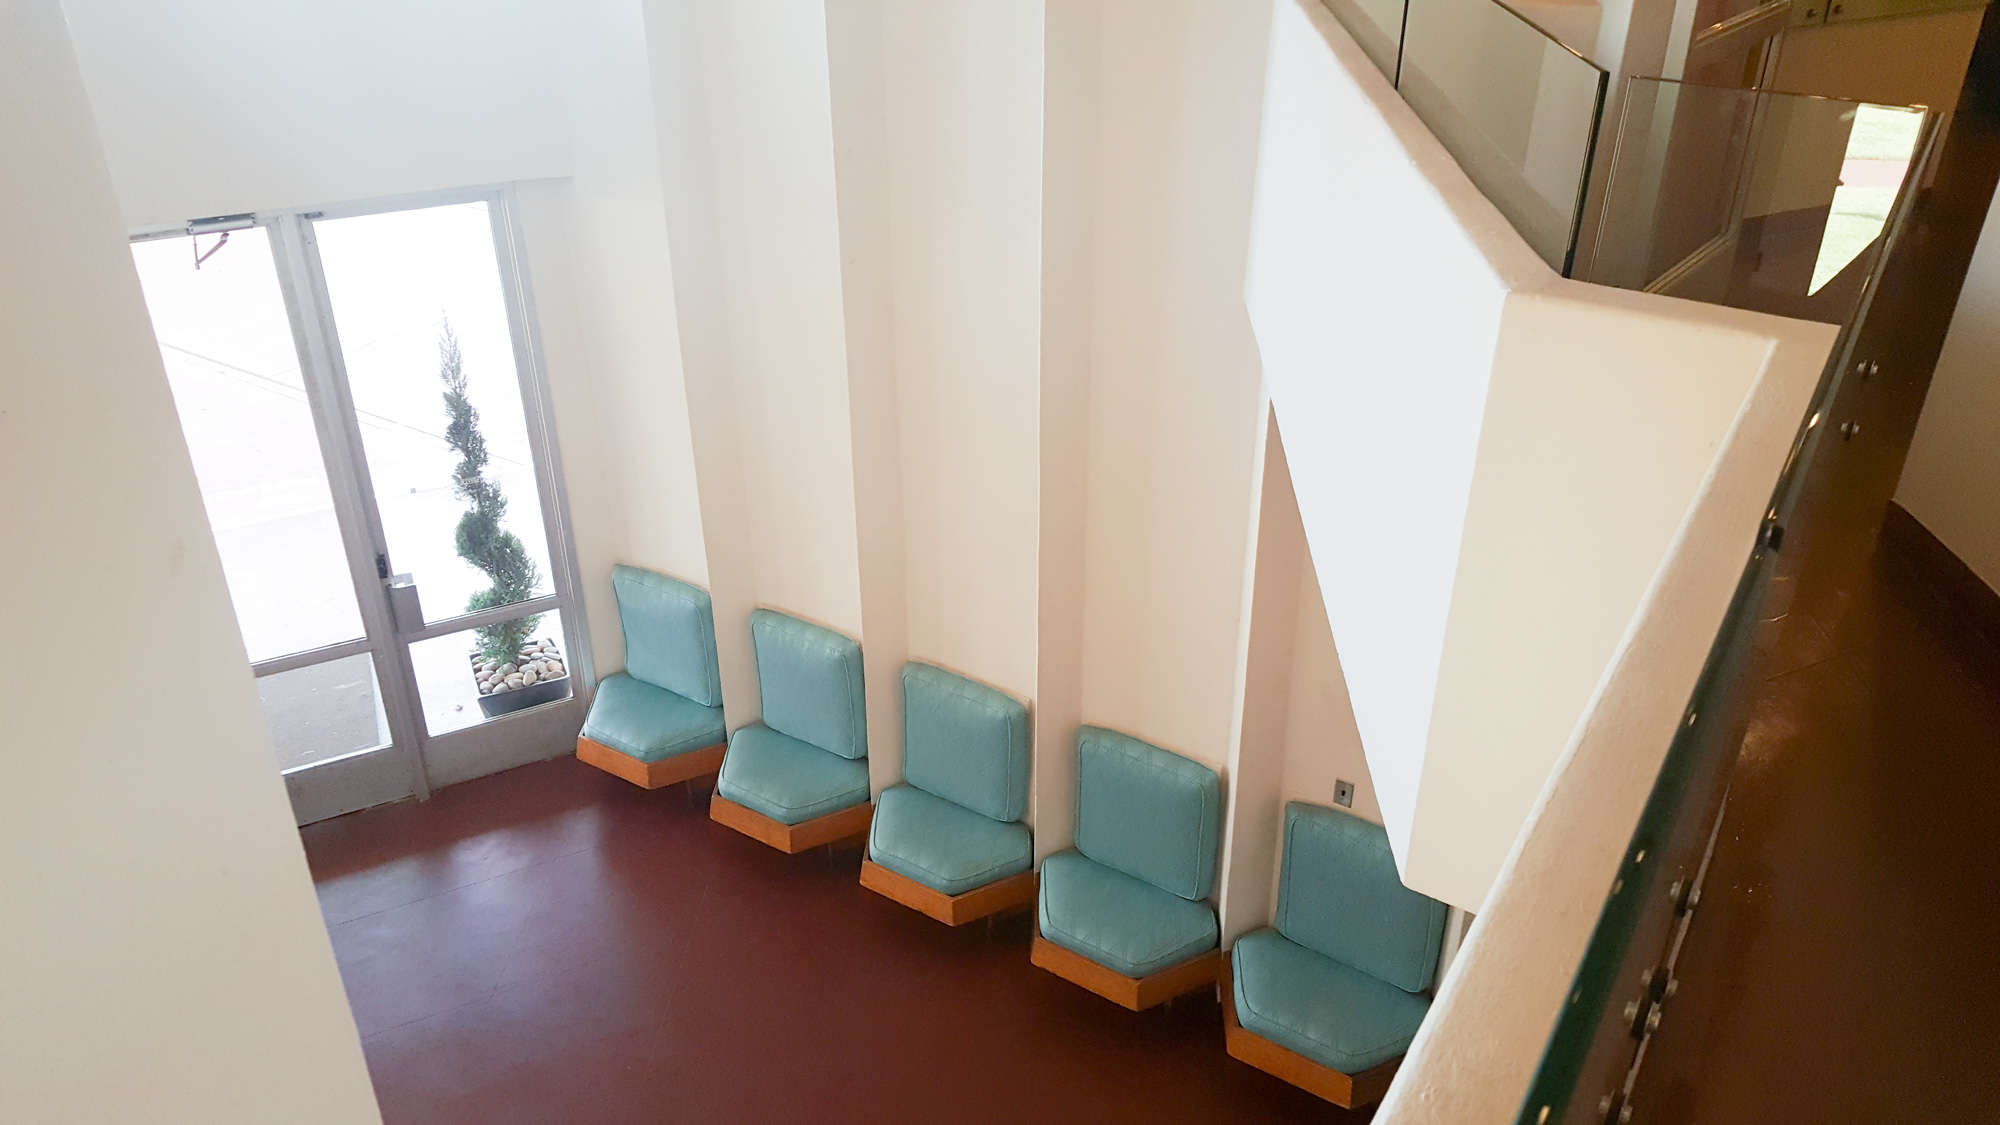 Looking down into the lobby of the Price Tower.